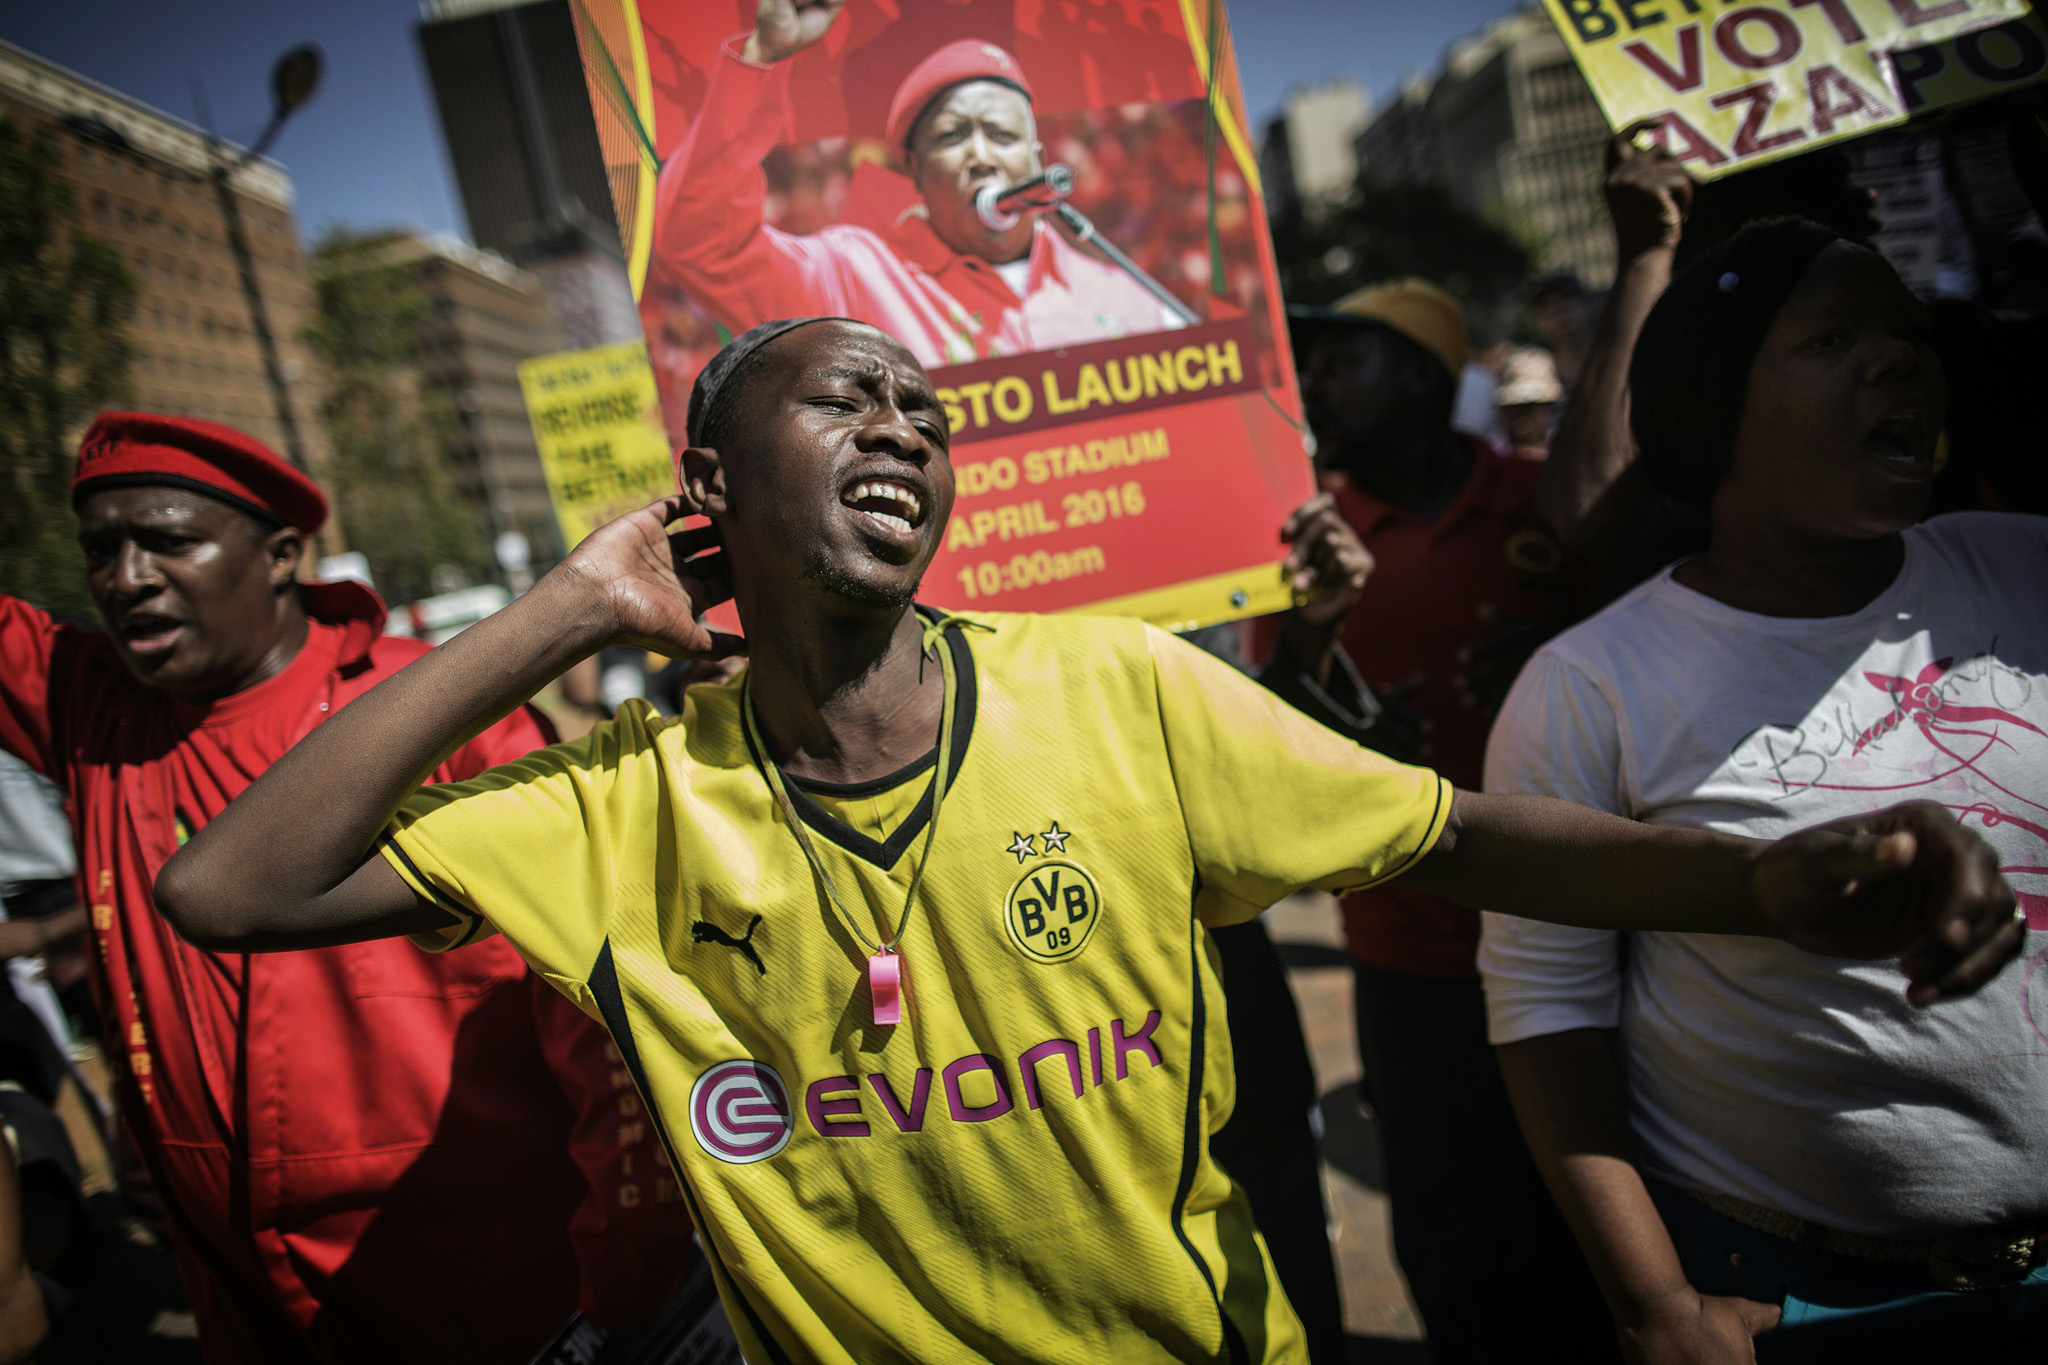 A man shouts slogans against South Afric...A man shouts slogans against South African President Jacob Zuma and the ruling African National Congress (ANC) party during a protest organized by the opposition political parties, Civil Society organizations and Religious group as the nation celebrates Freedom Day in Johannesburg on April 27, 2016. / AFP PHOTO / GIANLUIGI GUERCIAGIANLUIGI GUERCIA/AFP/Getty Images